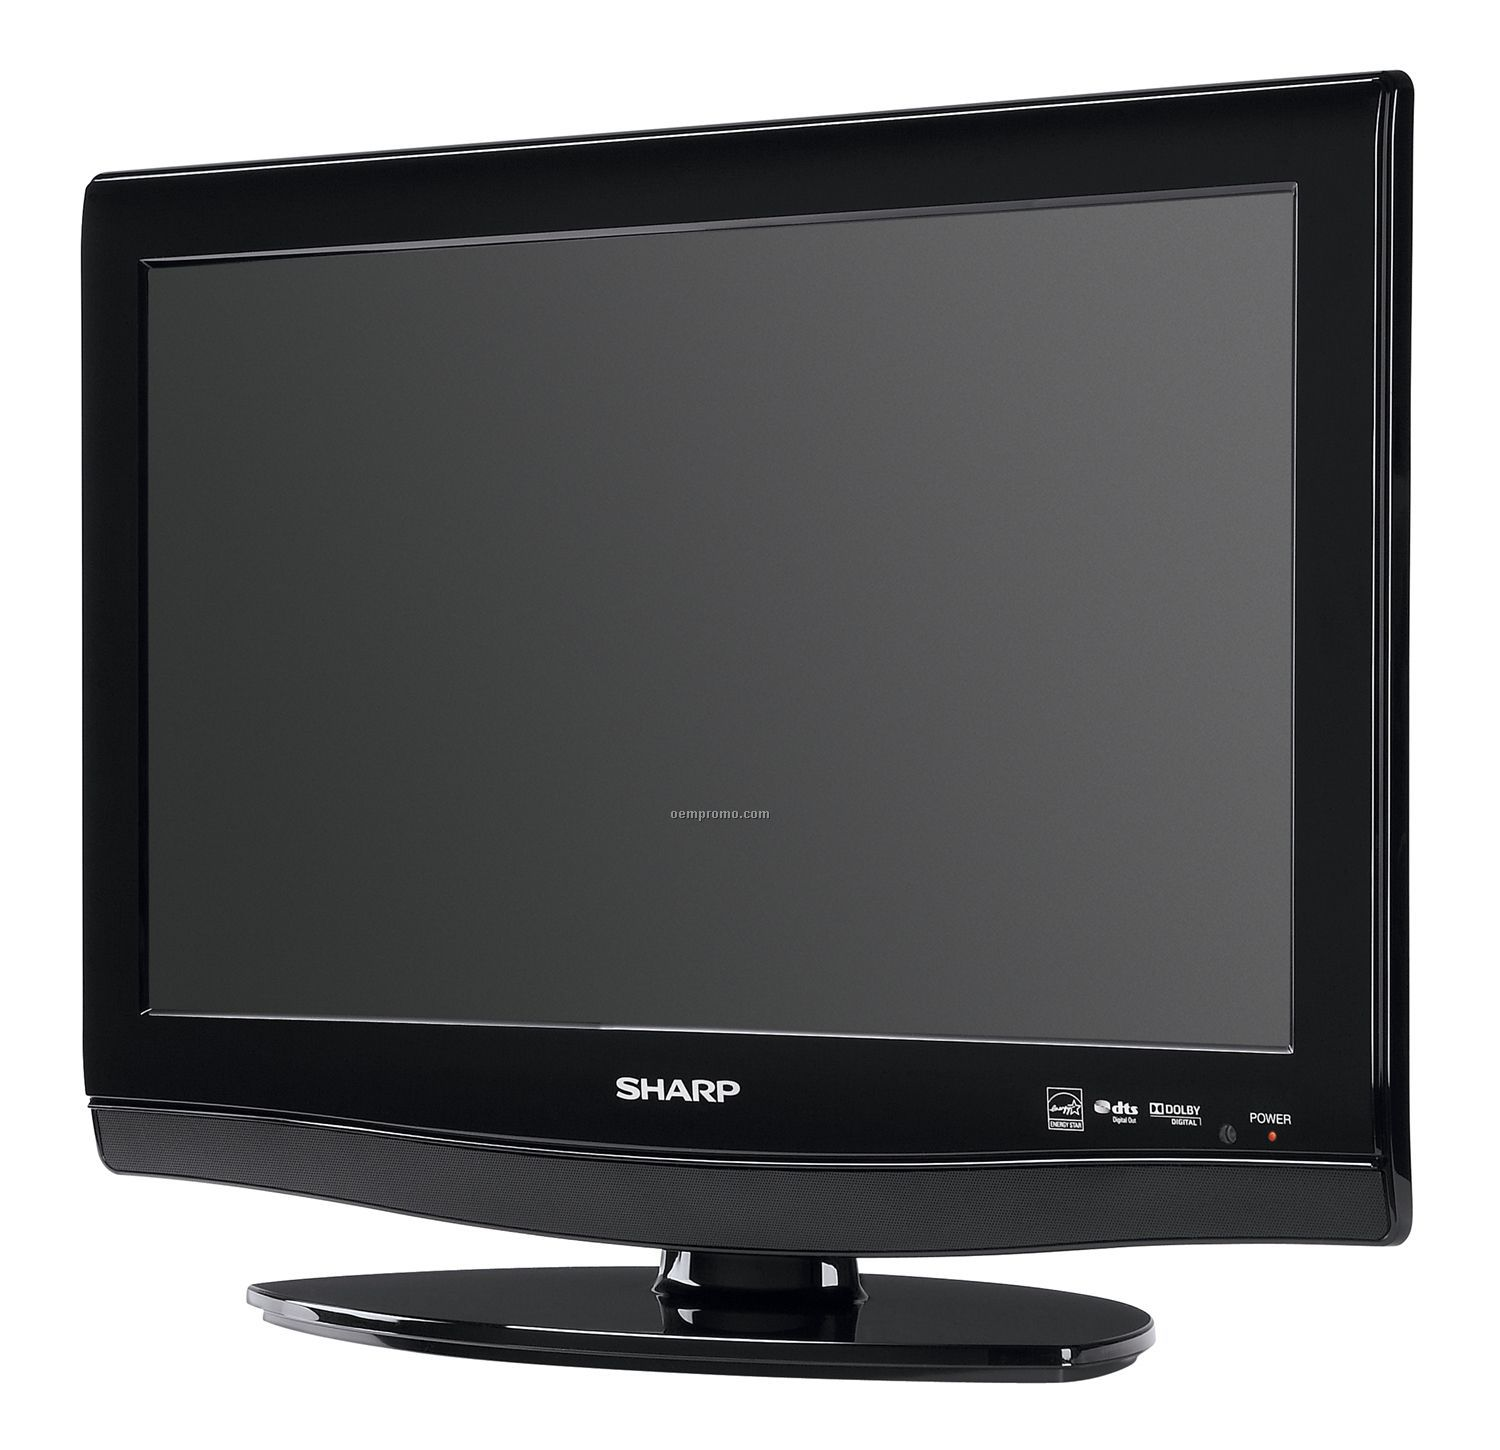 sharp19 hd lcd tv dvd combo china wholesale sharp19 hd lcd tv dvd combo. Black Bedroom Furniture Sets. Home Design Ideas